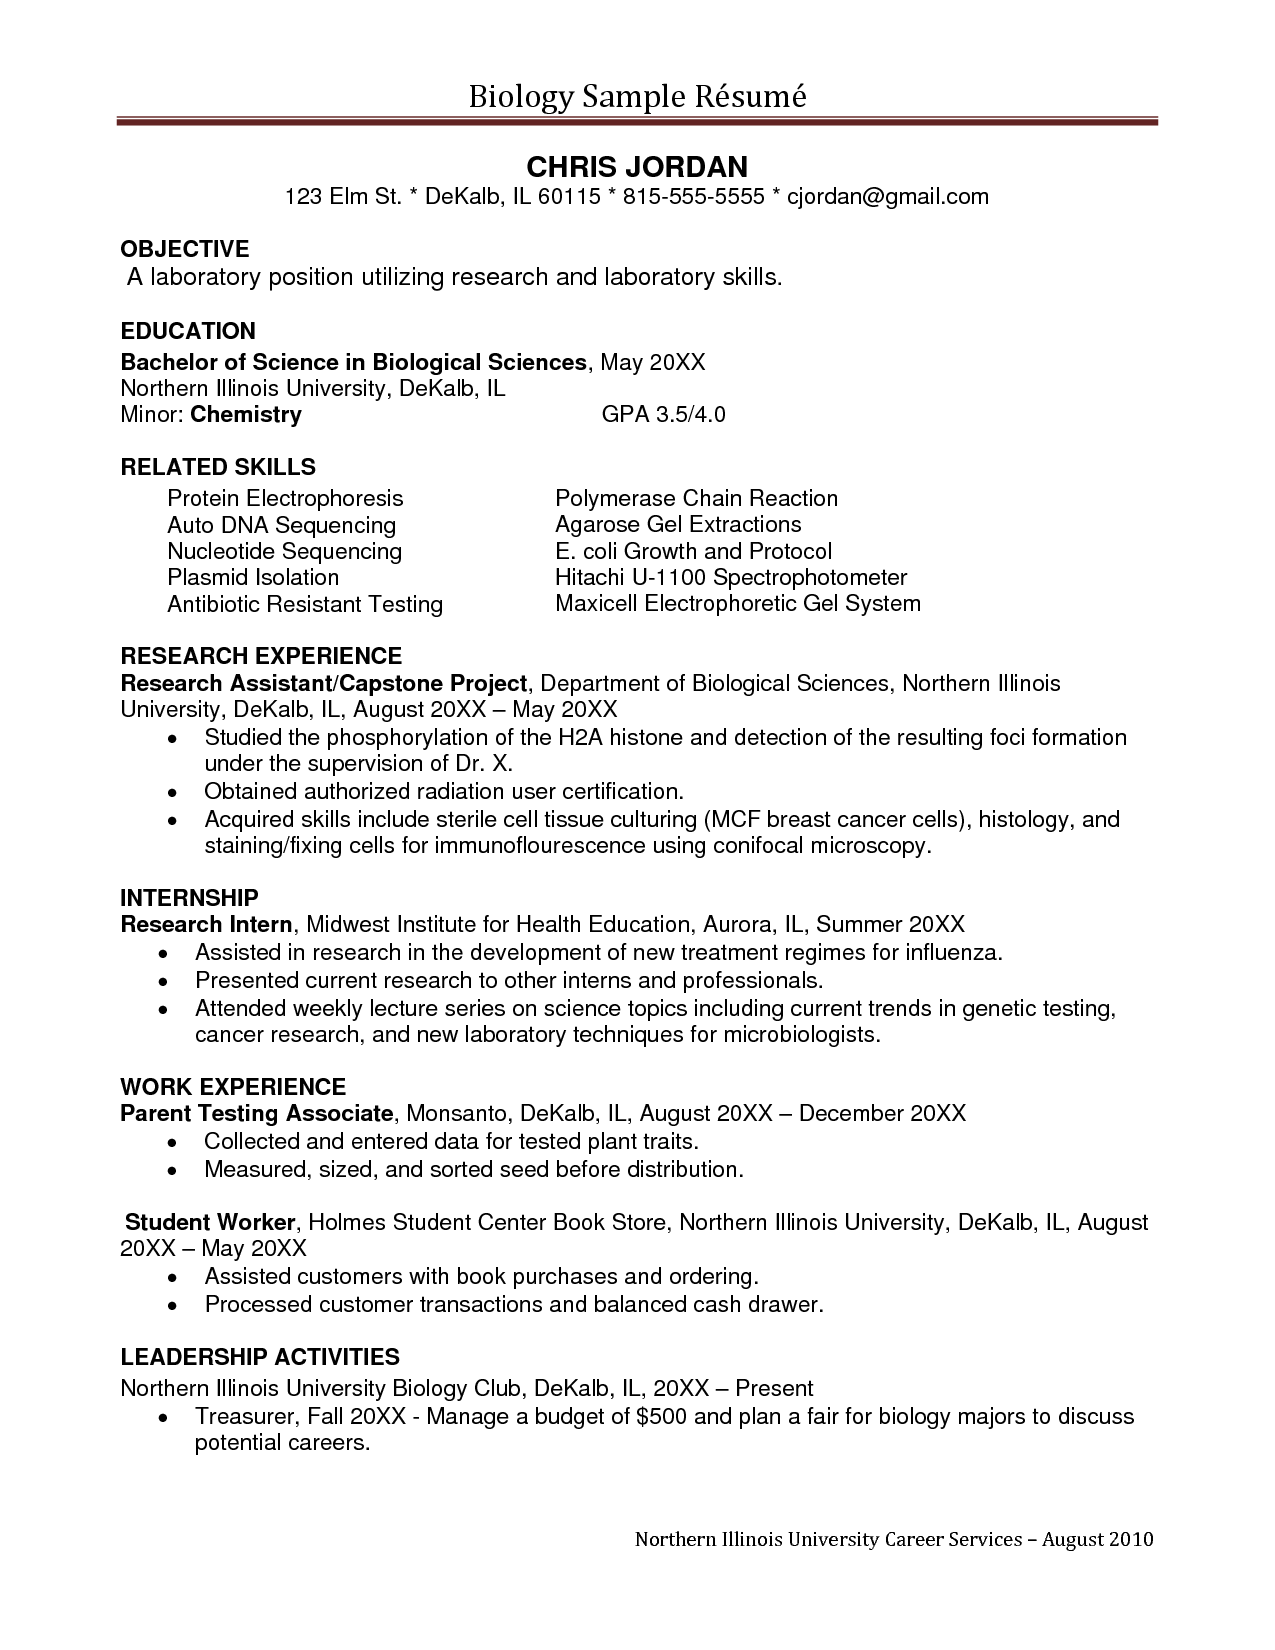 Research Assistant Resume Sample Objective Research Assistant – Resume Objectives for Administrative Assistants